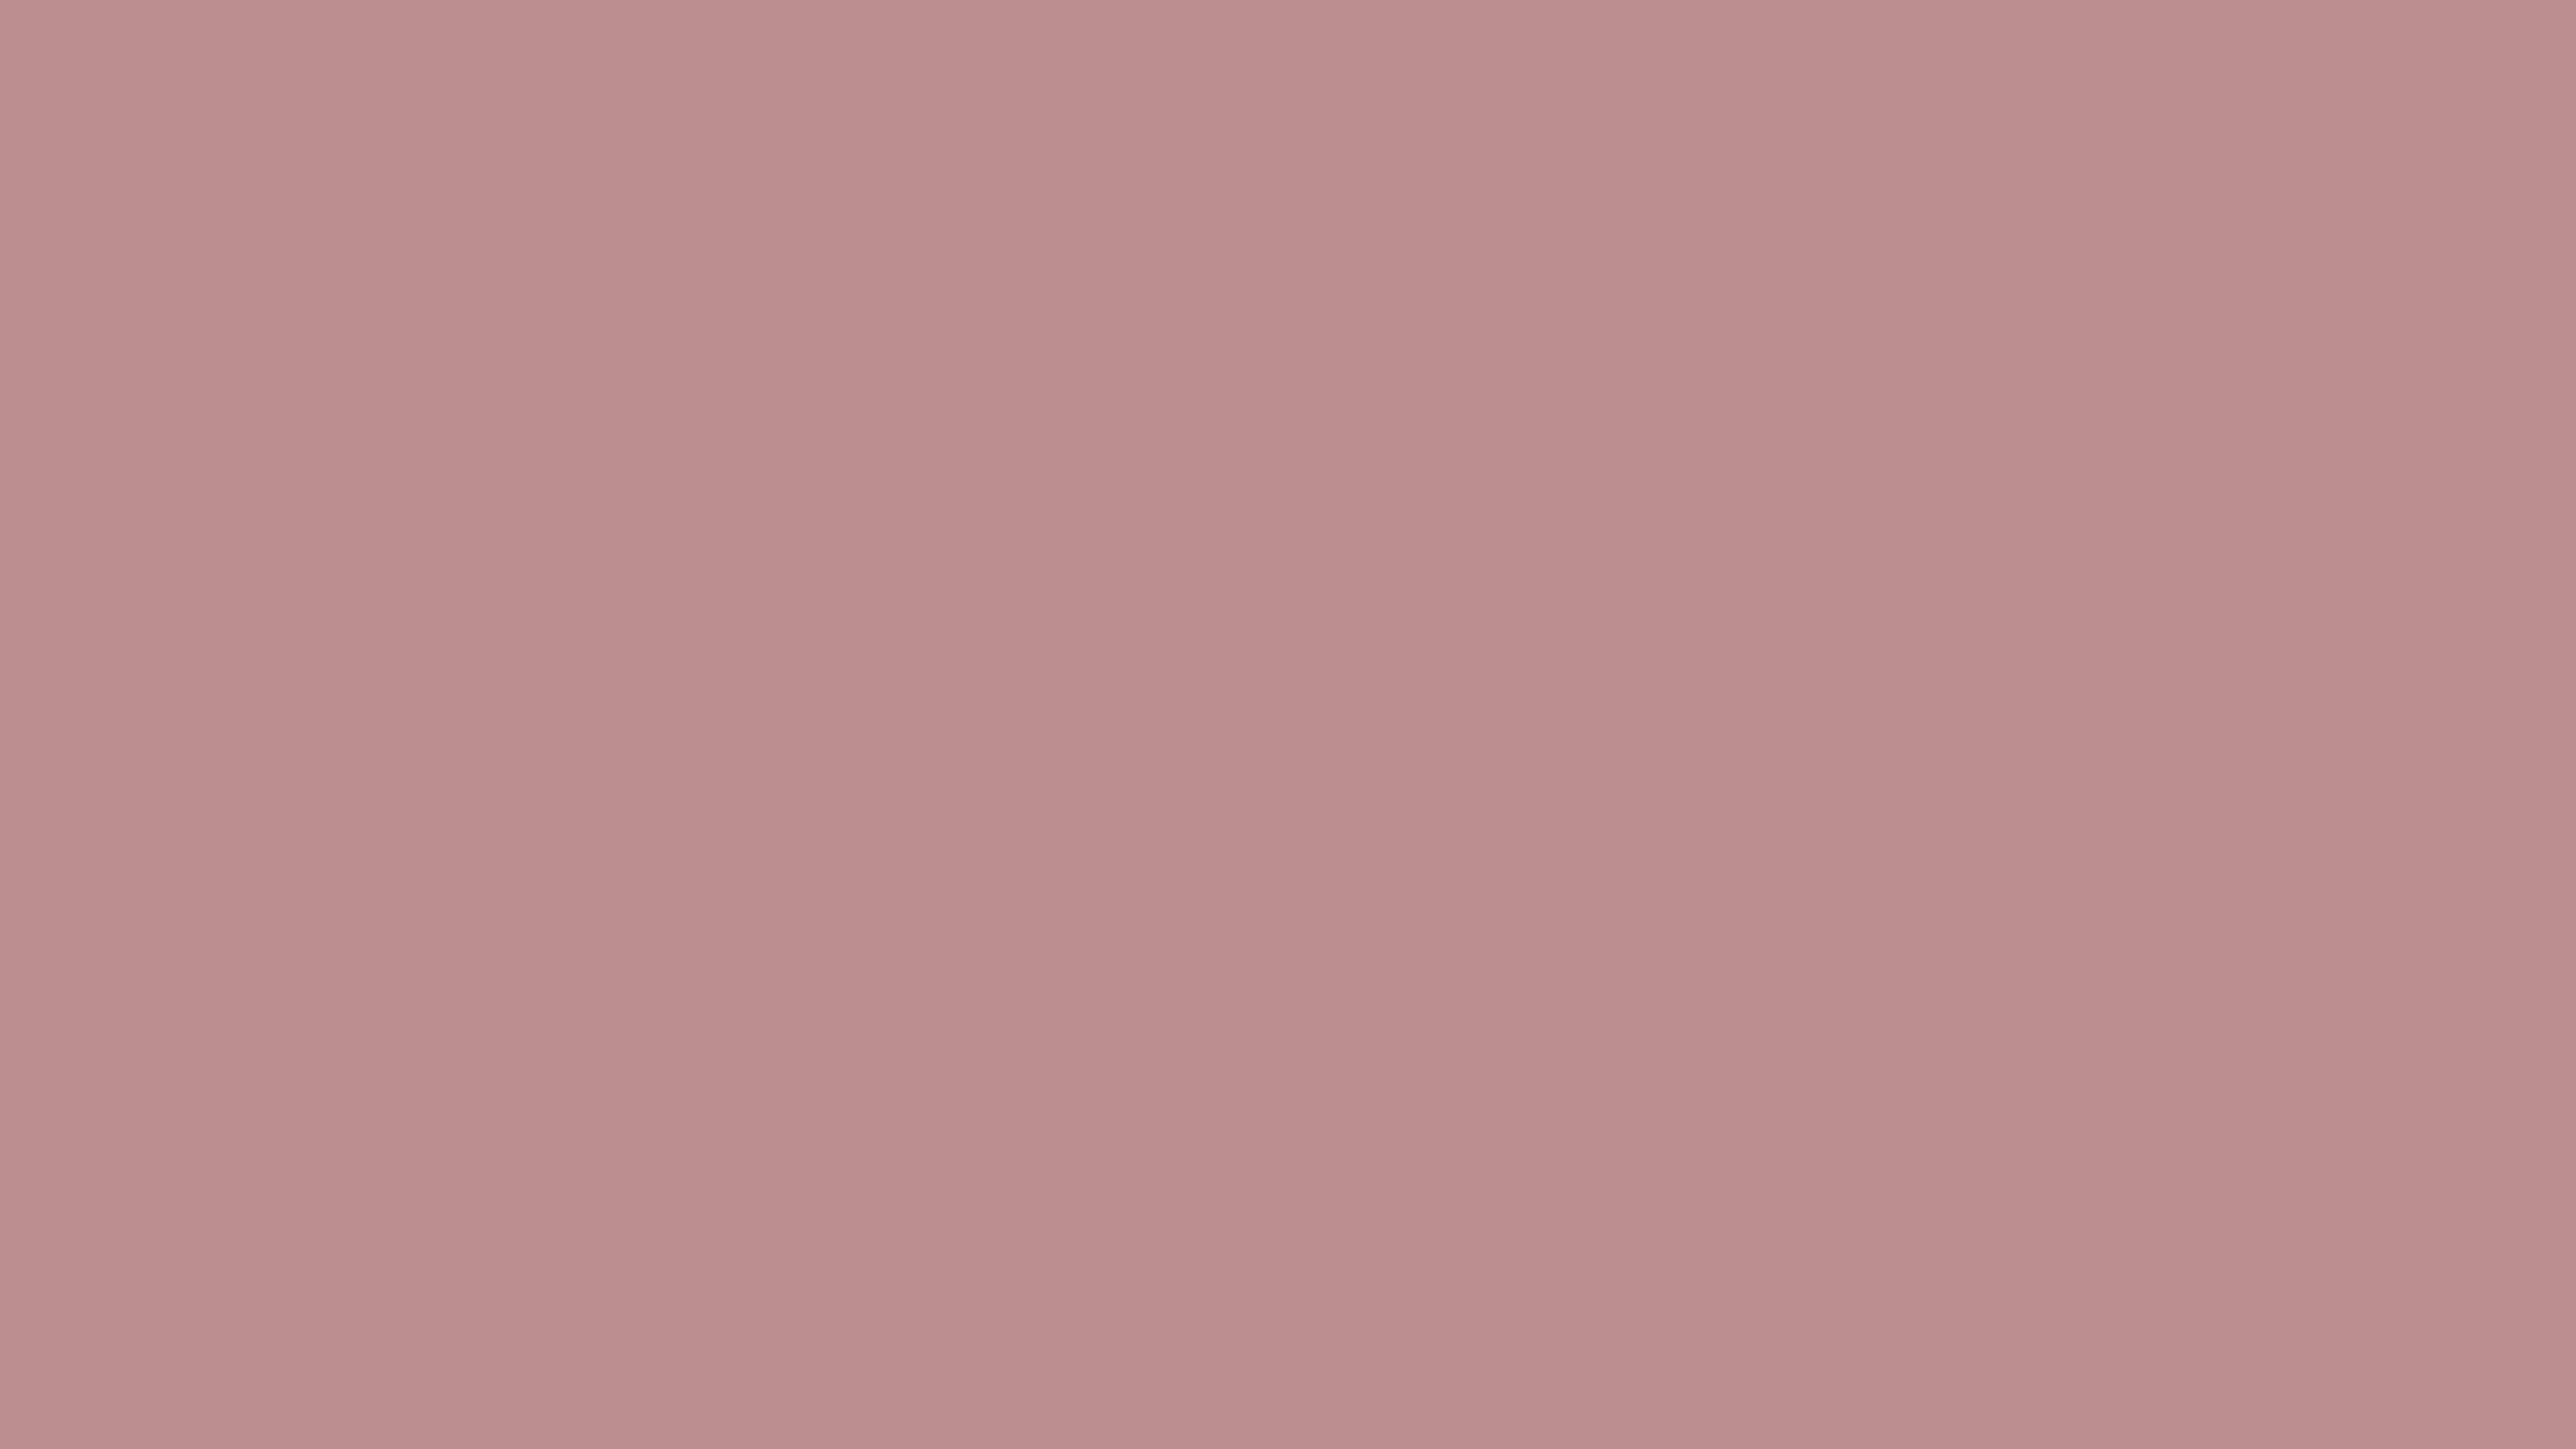 5120x2880 Rosy Brown Solid Color Background